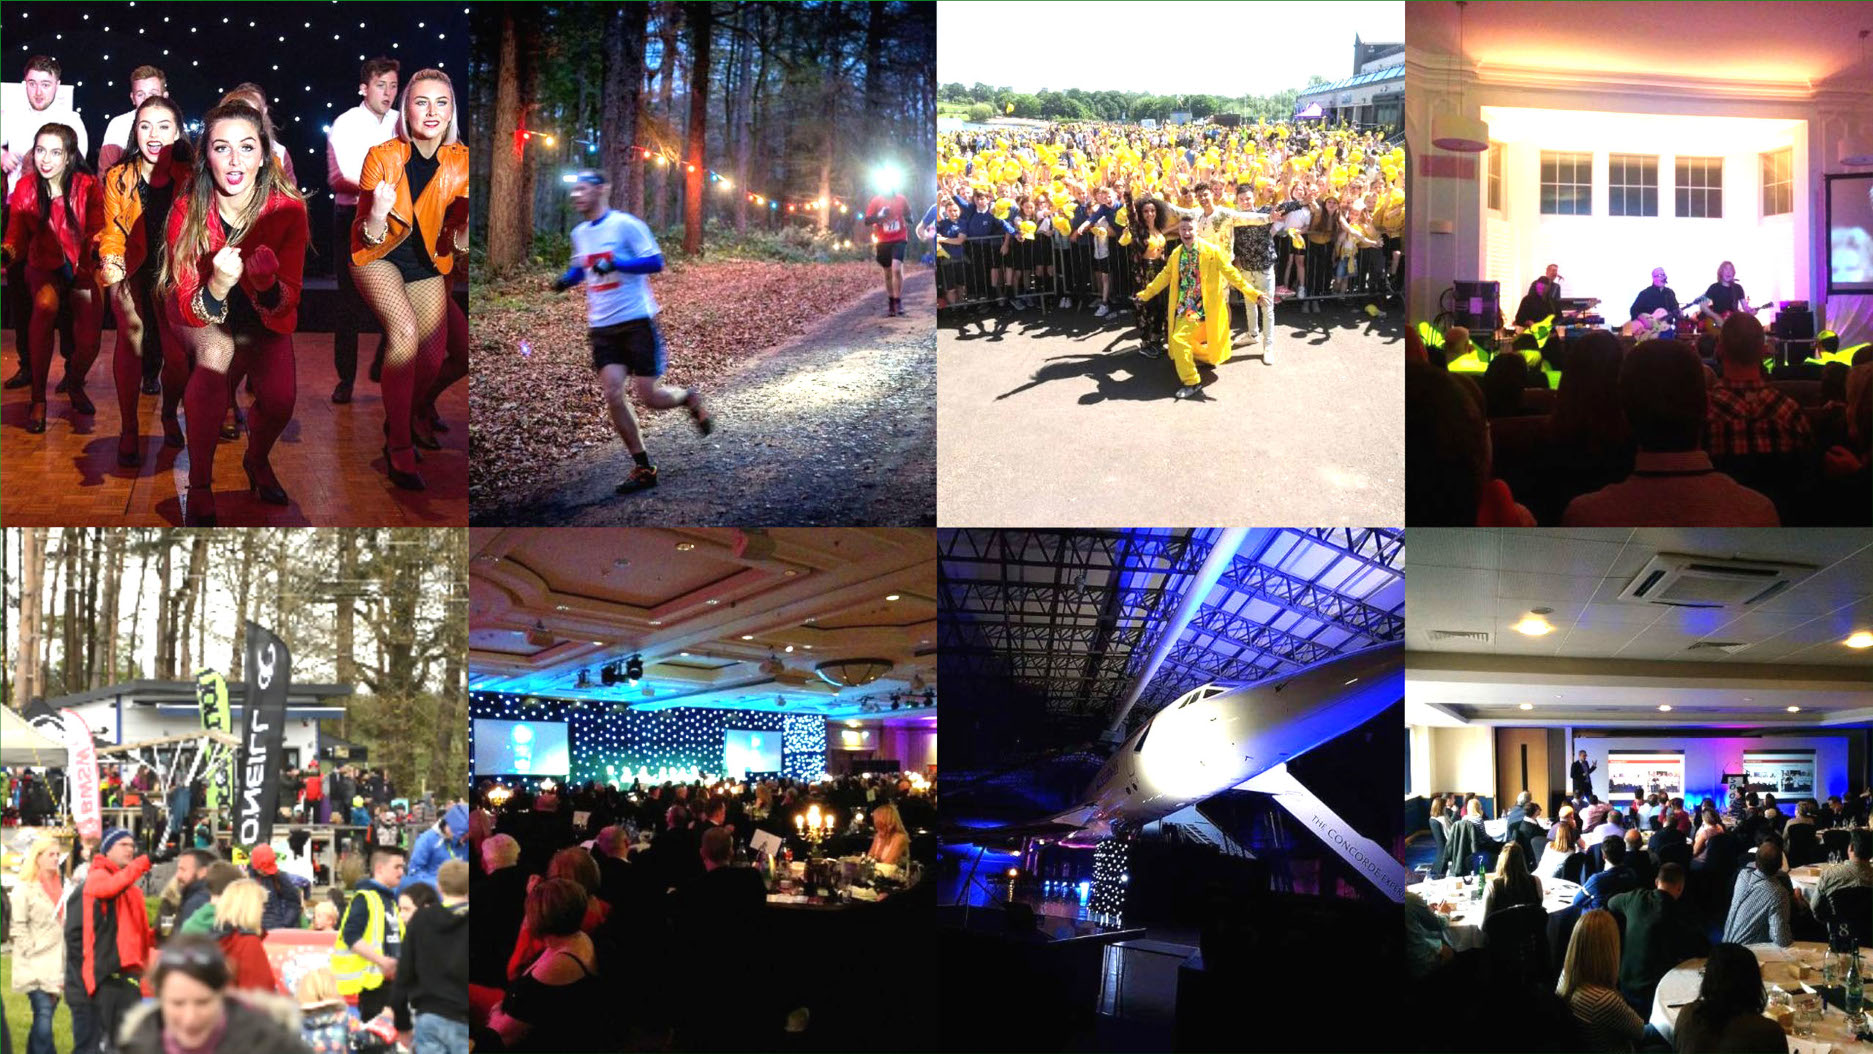 Montage of 8 images from Live Events: Cabaret, running, open air concert, acoustic performance, festival, charity ball, concert under Concorde and conference